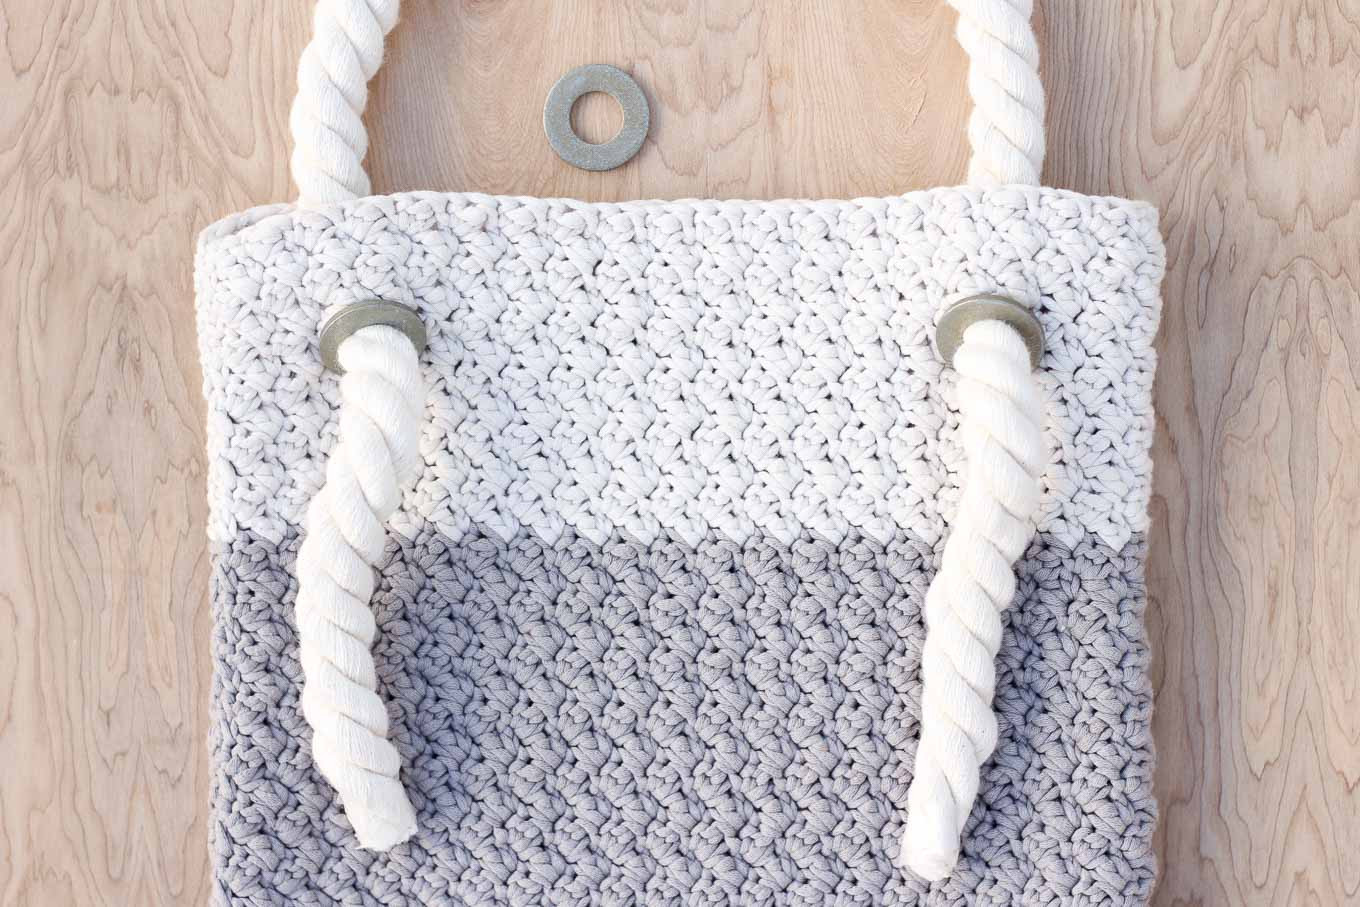 Crochet Bag Pattern for Beginners Inspirational Easy Modern Free Crochet Bag Pattern for Beginners Of Awesome 45 Photos Crochet Bag Pattern for Beginners